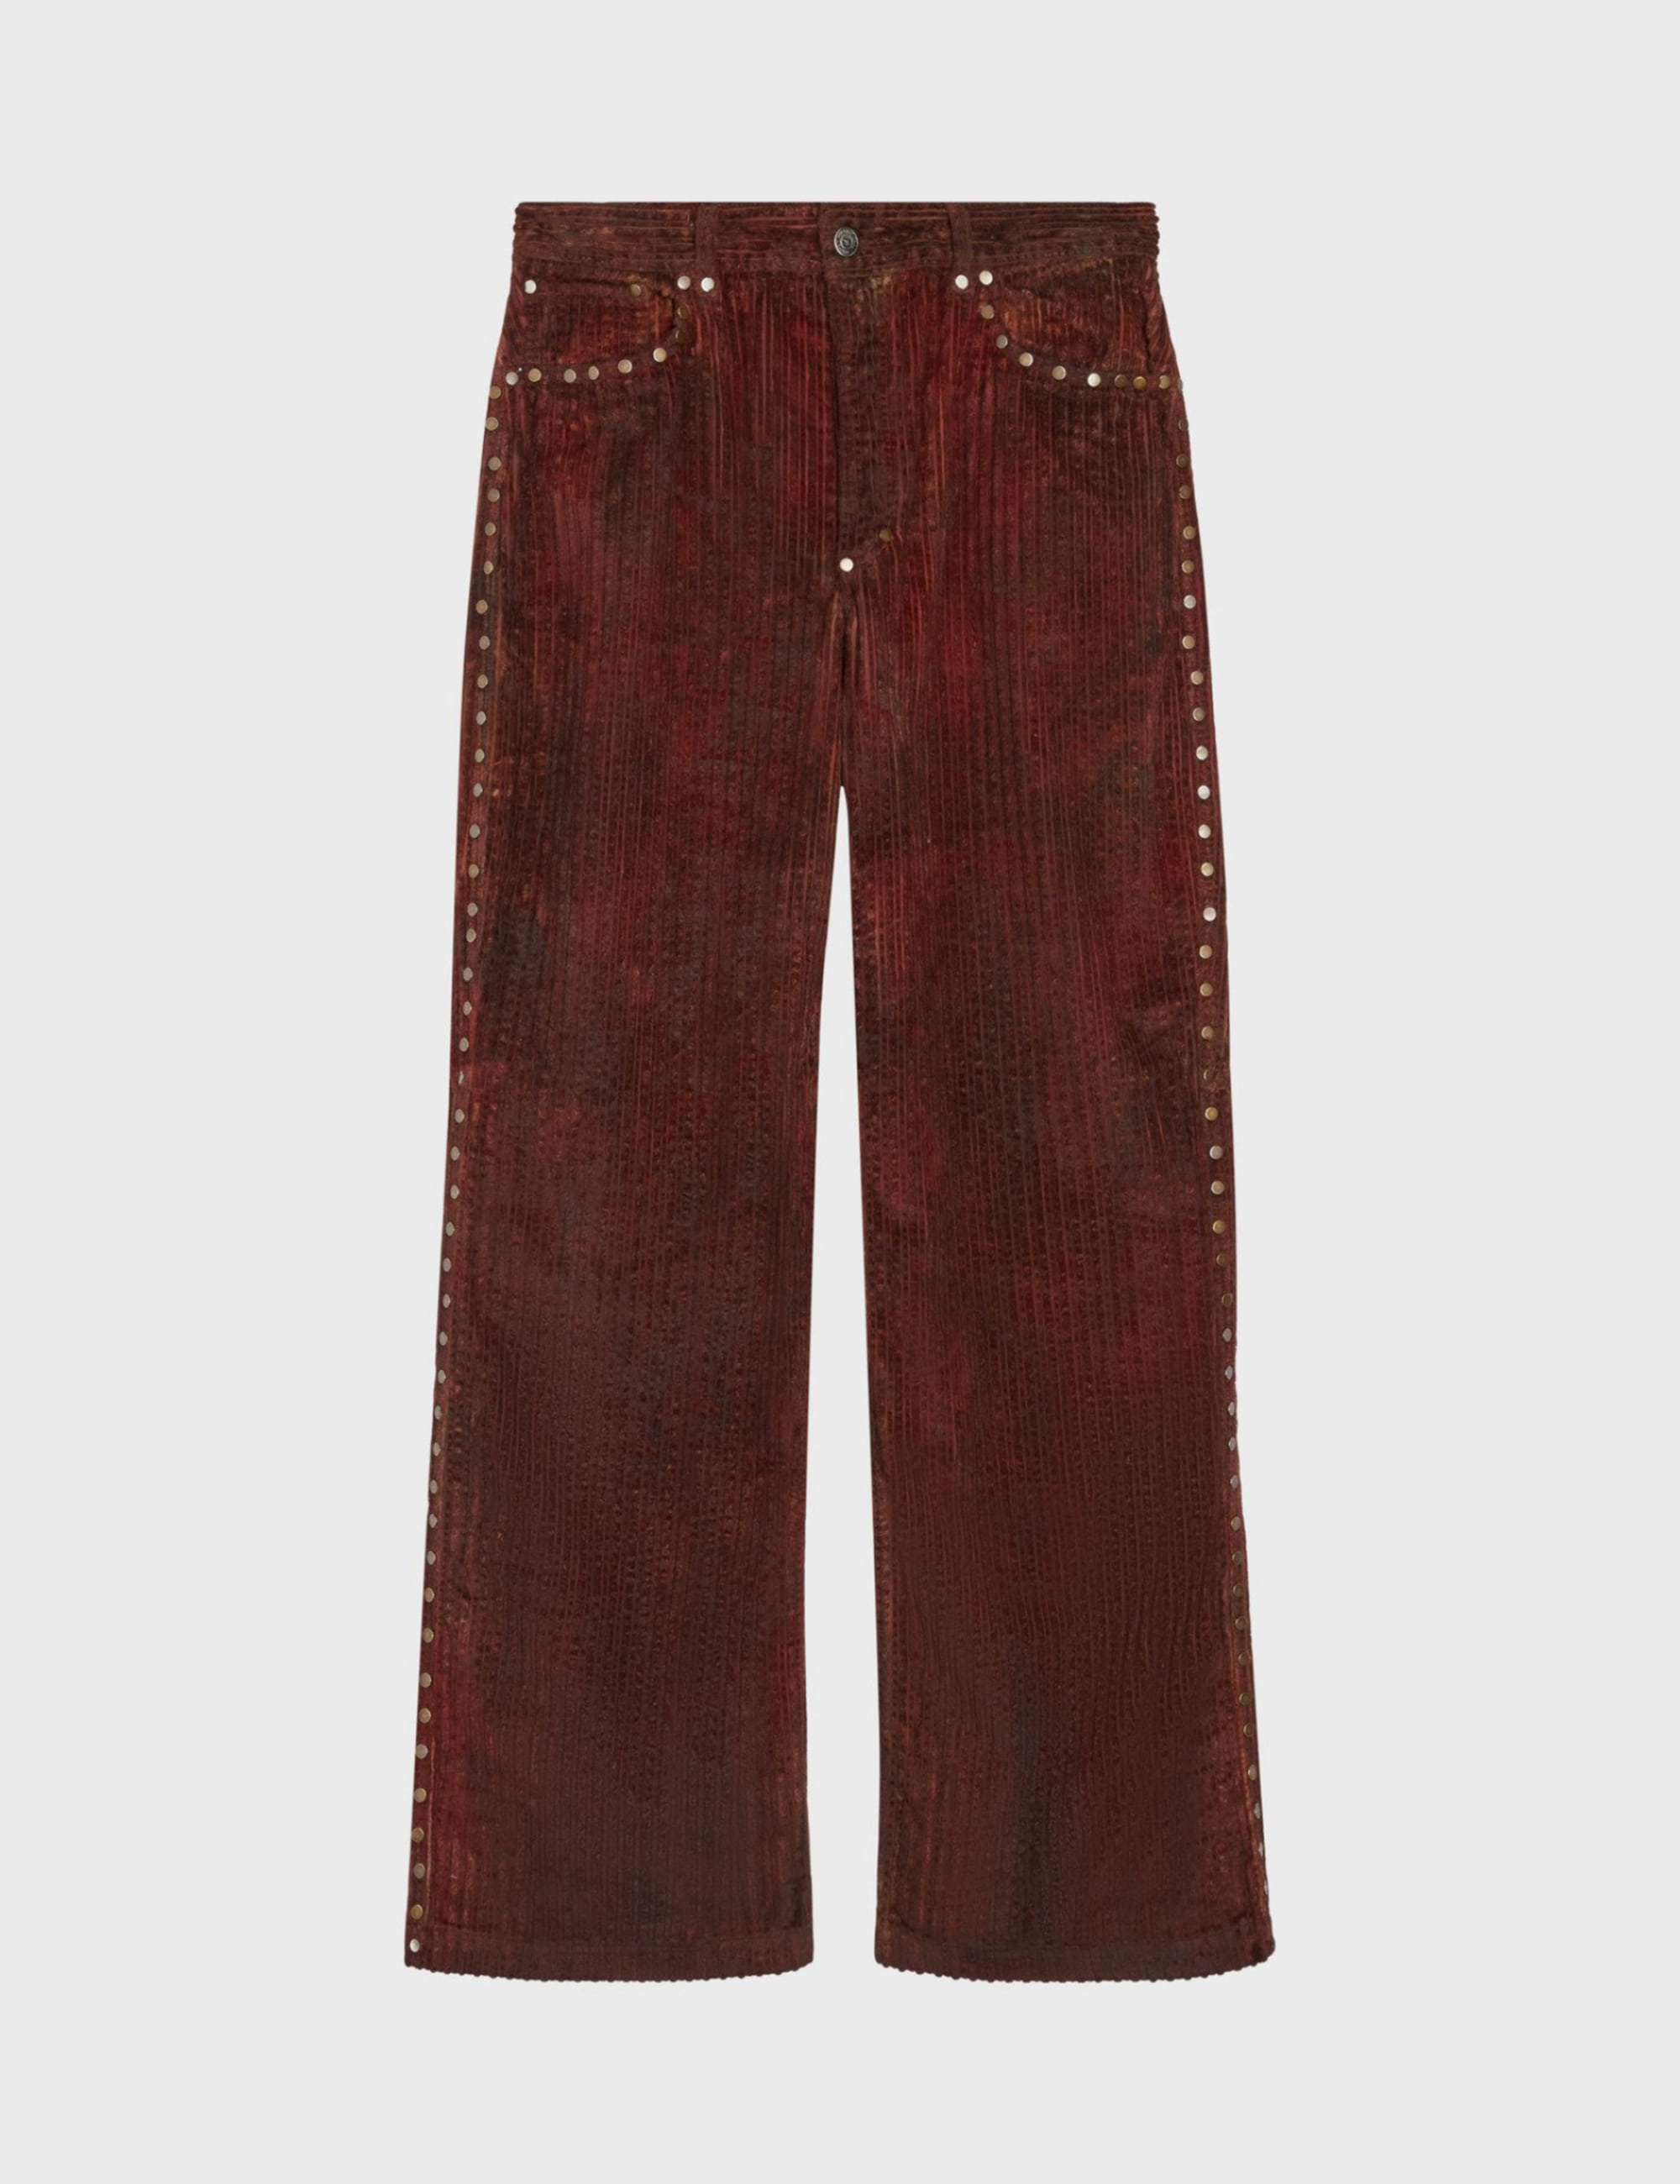 TIE-DYE STUDDED JEAN_BROWN